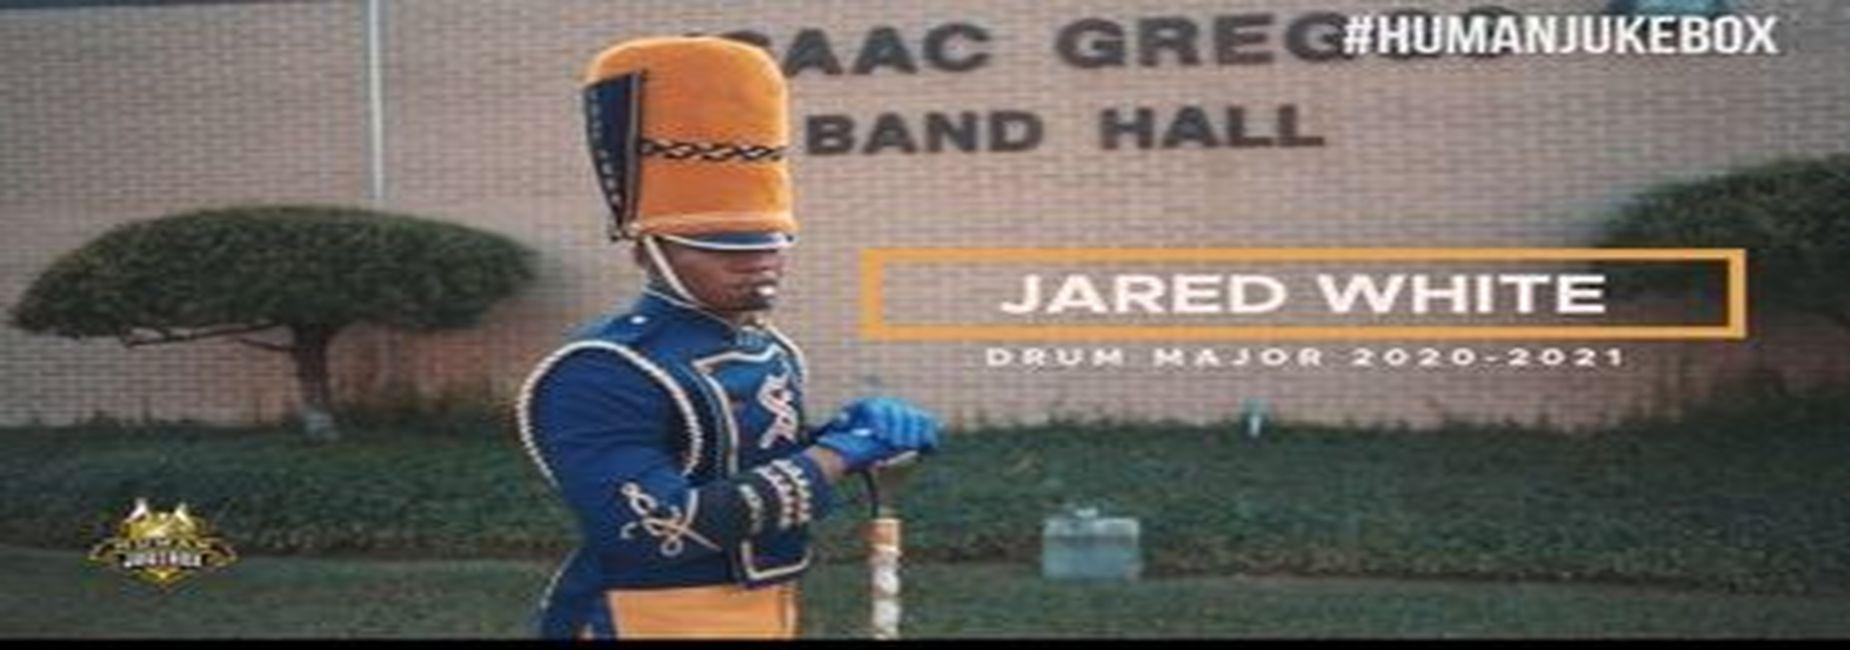 a photo of former Baker High School Drum Major, Jared White, in front of the SU Band Room as the 2020-2021 SU Human Jukebox Drum Major